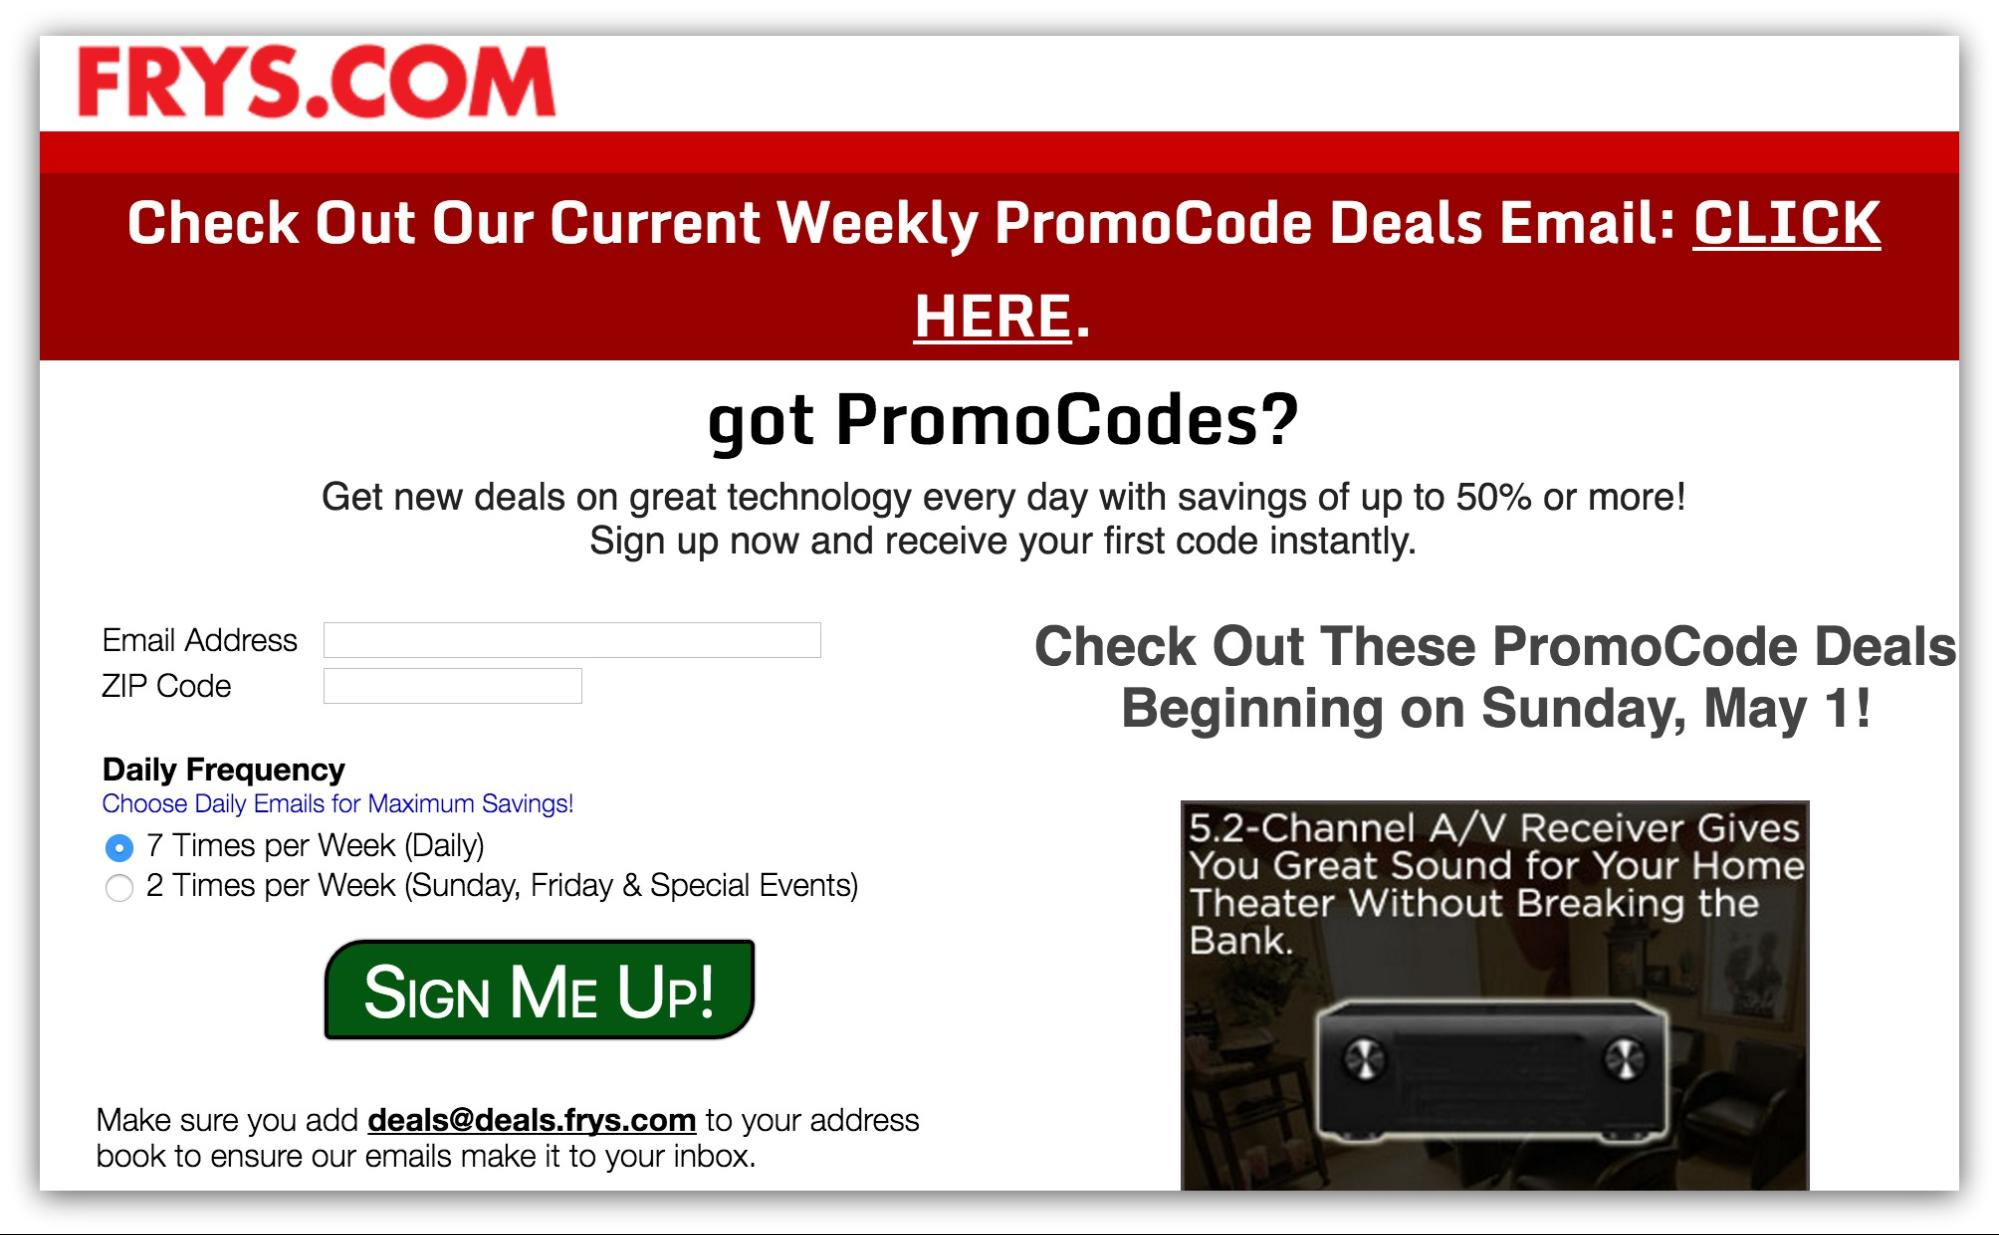 subscriber-only-deals-newsletter-list-building